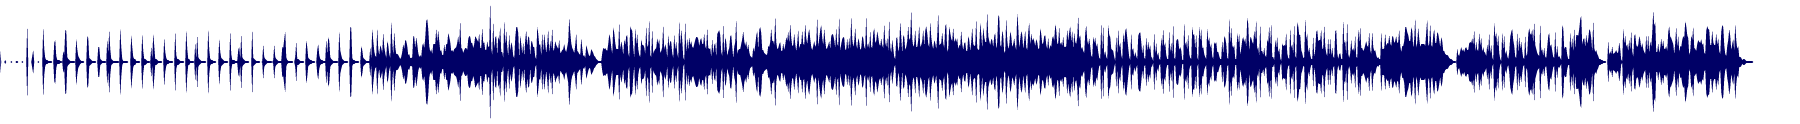 waveform of track #68295